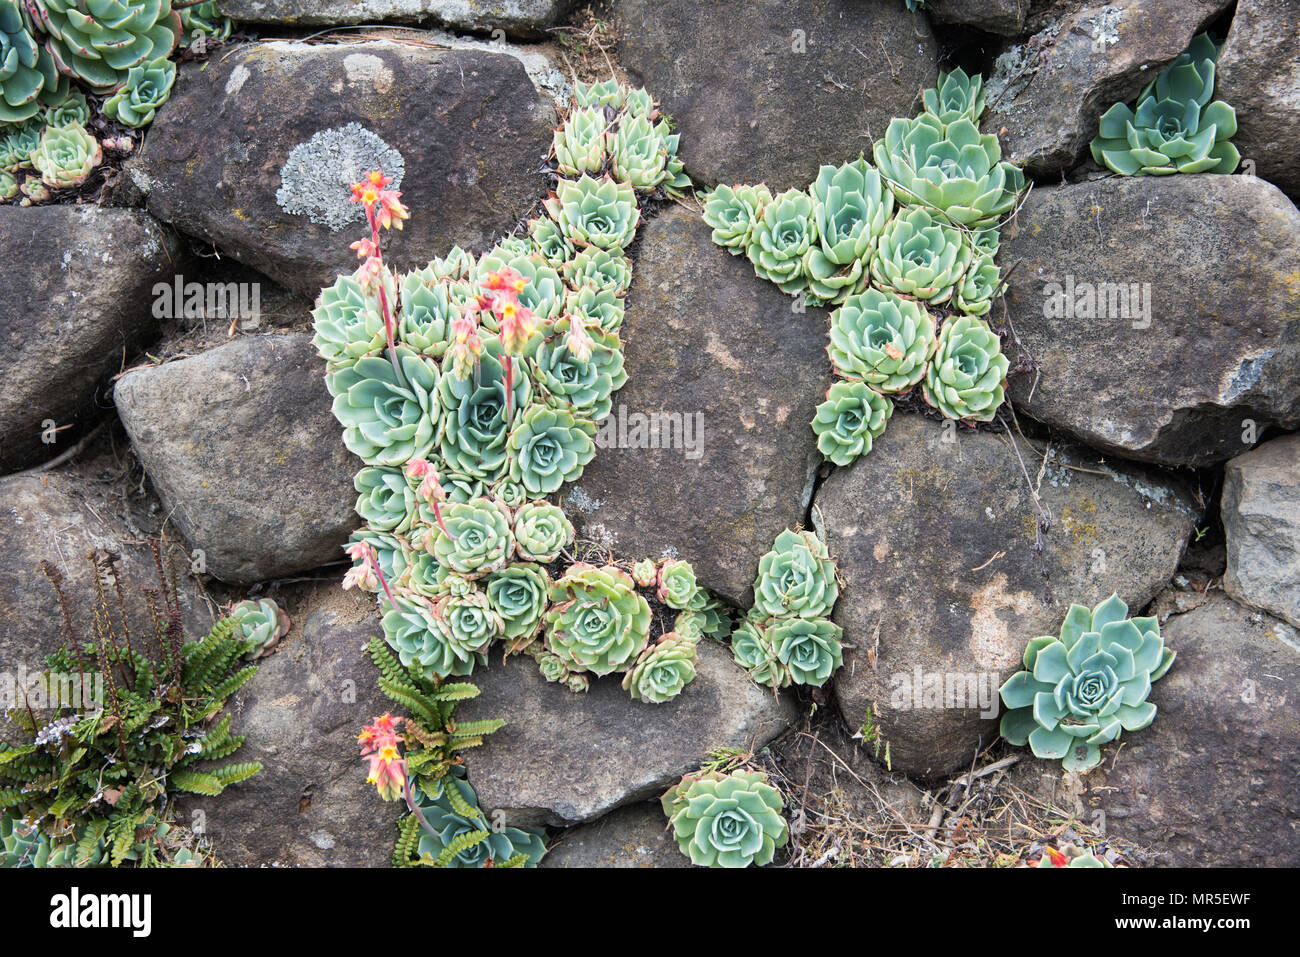 Succulent Plants Growing In Outdoor Rock Wall With Delicate Rosette Pattern Stock Photo Alamy